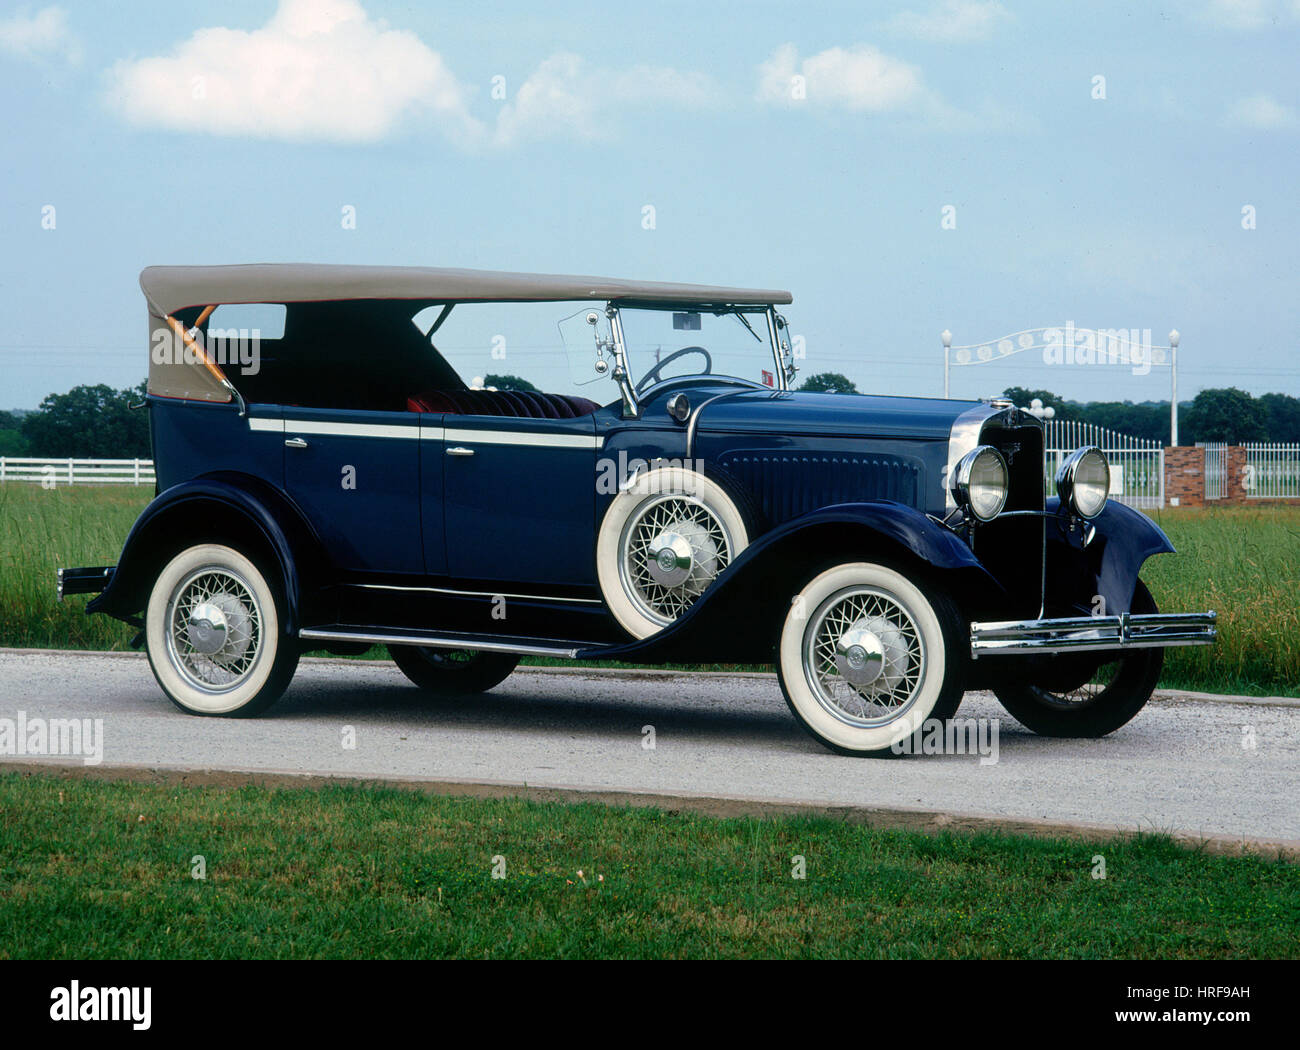 1930 Dodge series 8 - Stock Image